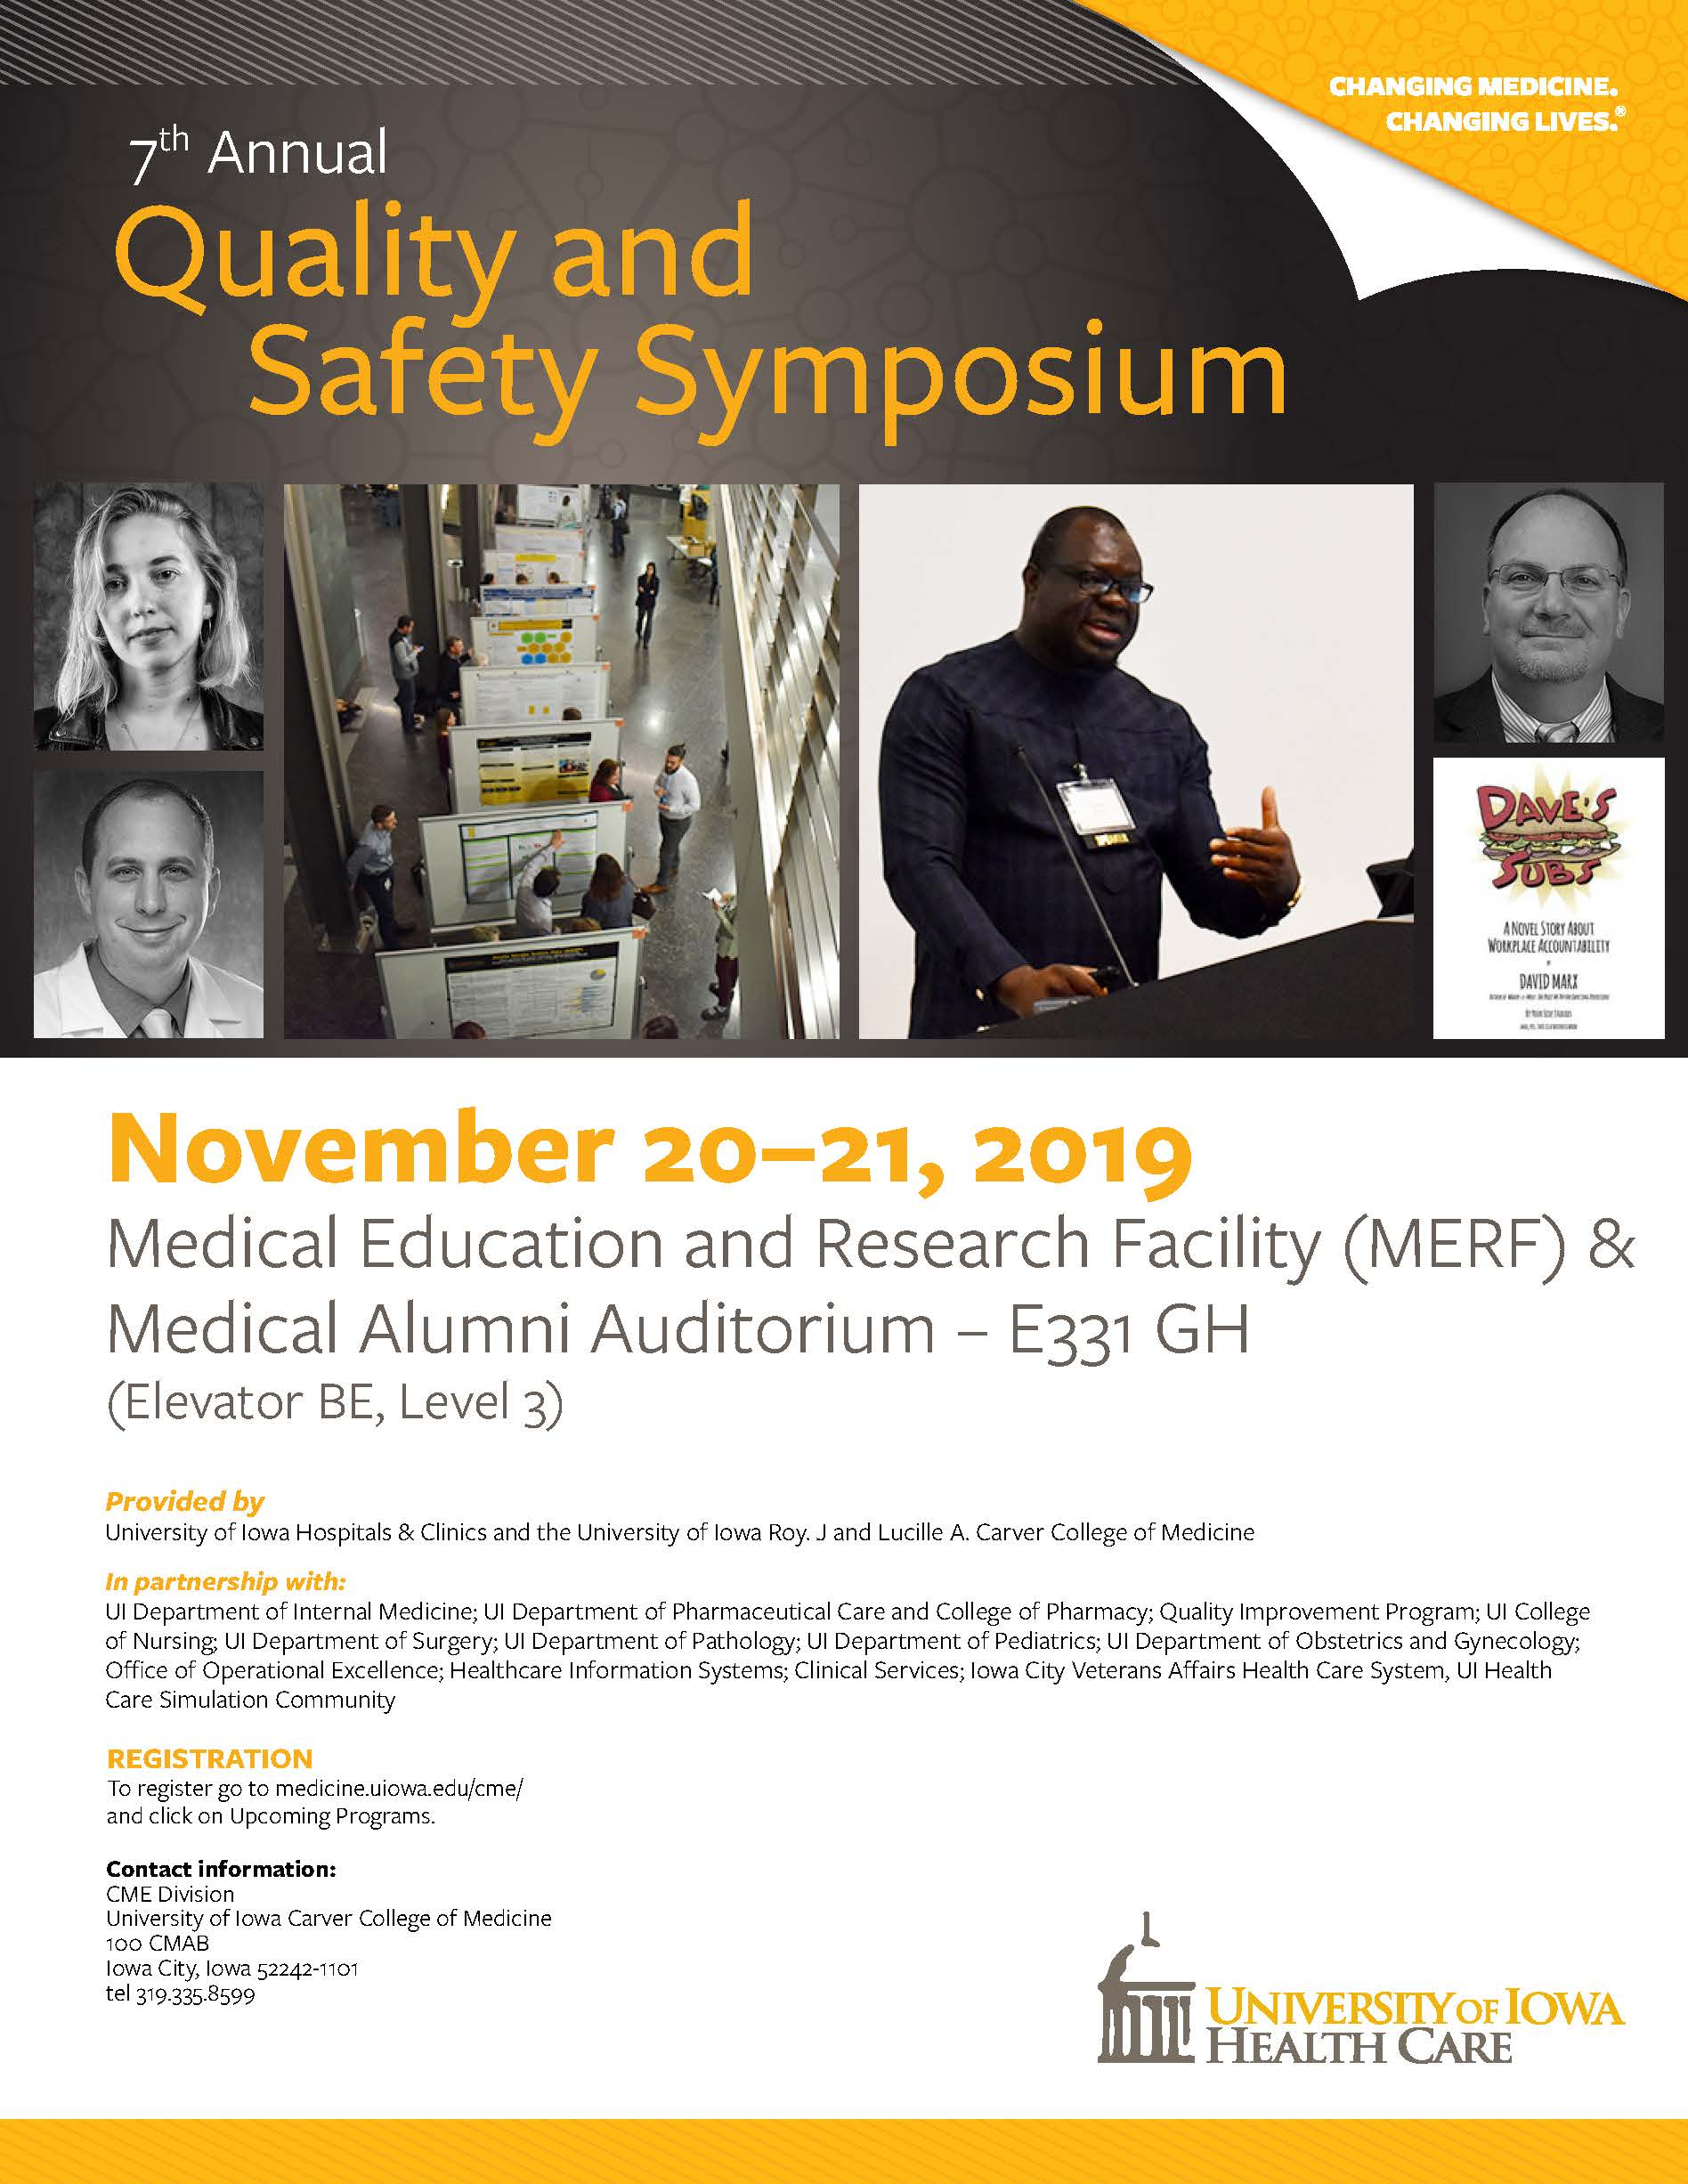 7th Annual Quality and Safety Symposium Banner